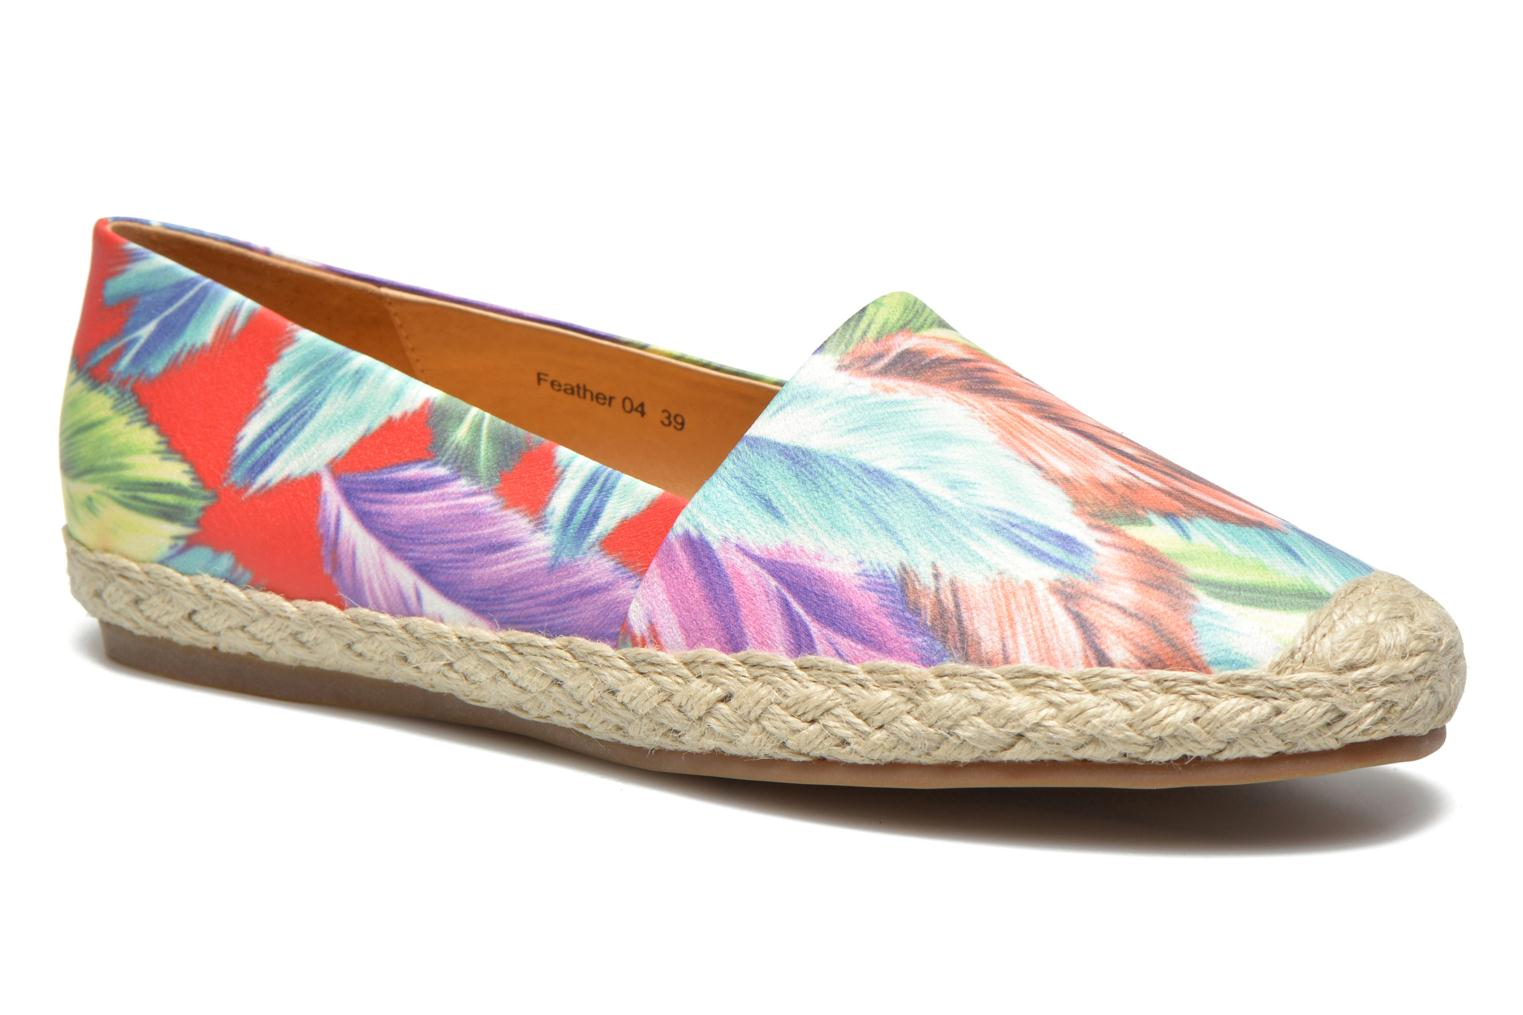 Espadrilles Feather by Shoe the bear